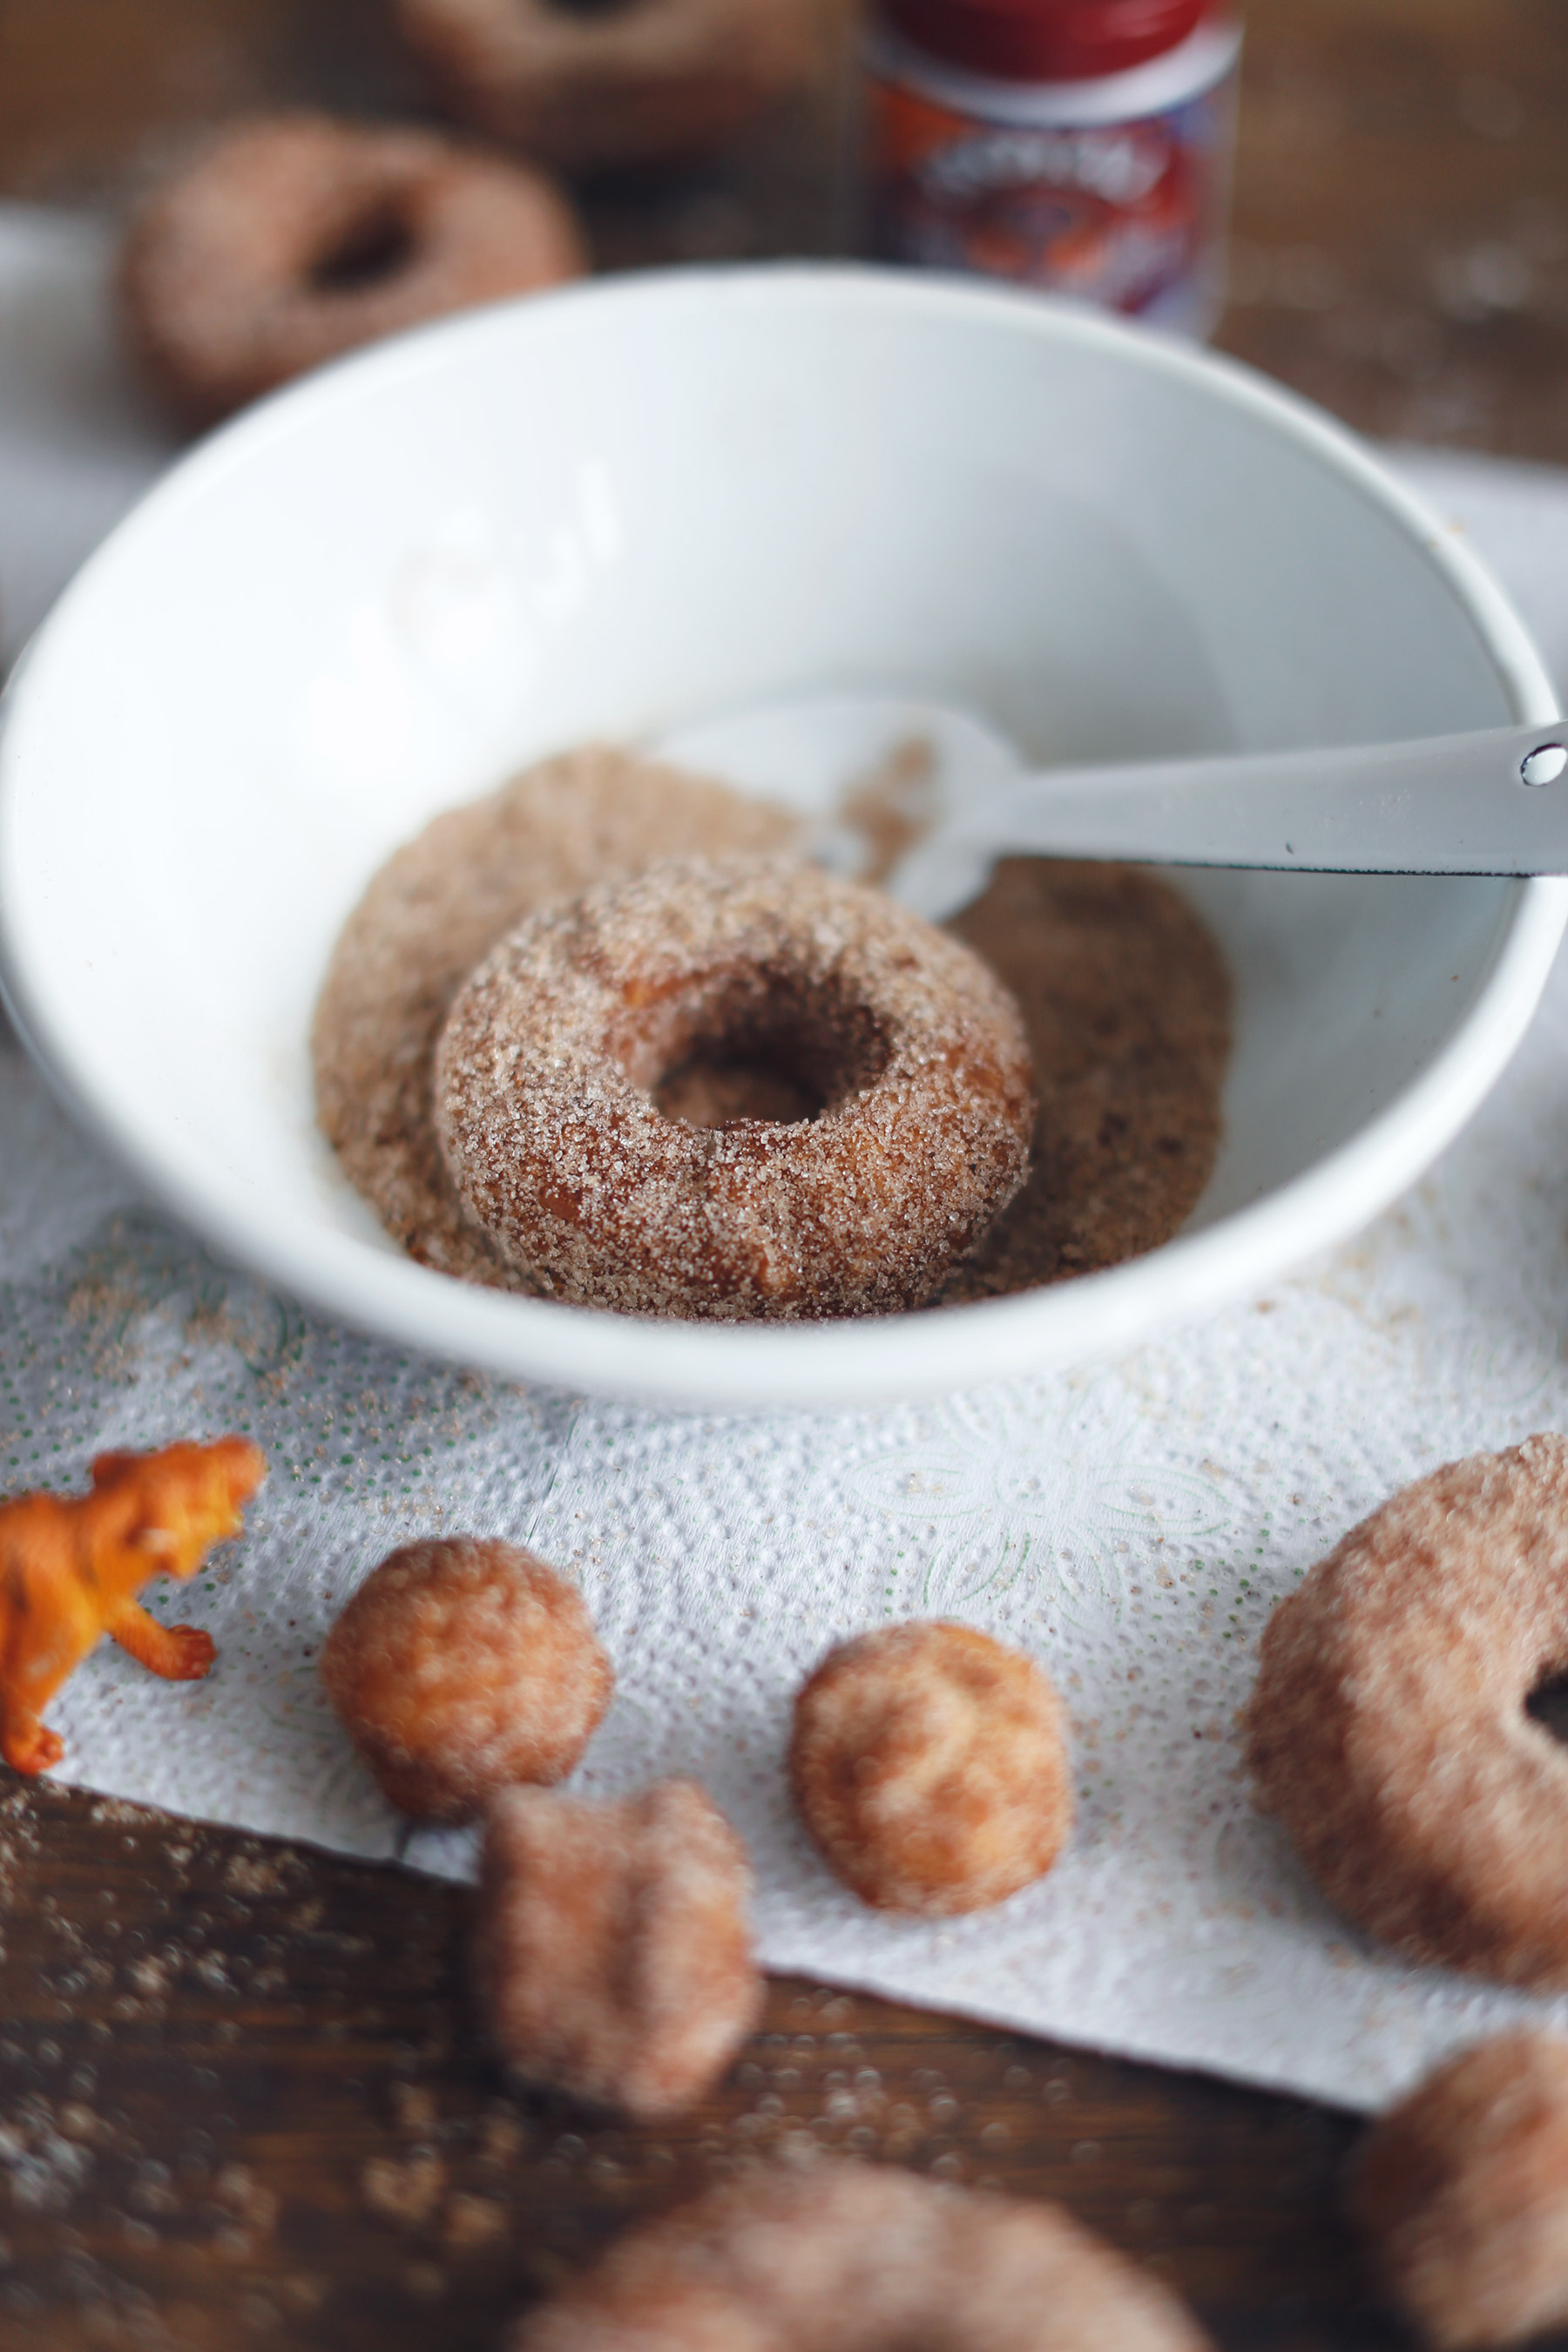 Cinnamon-and-sugar-doughnuts9